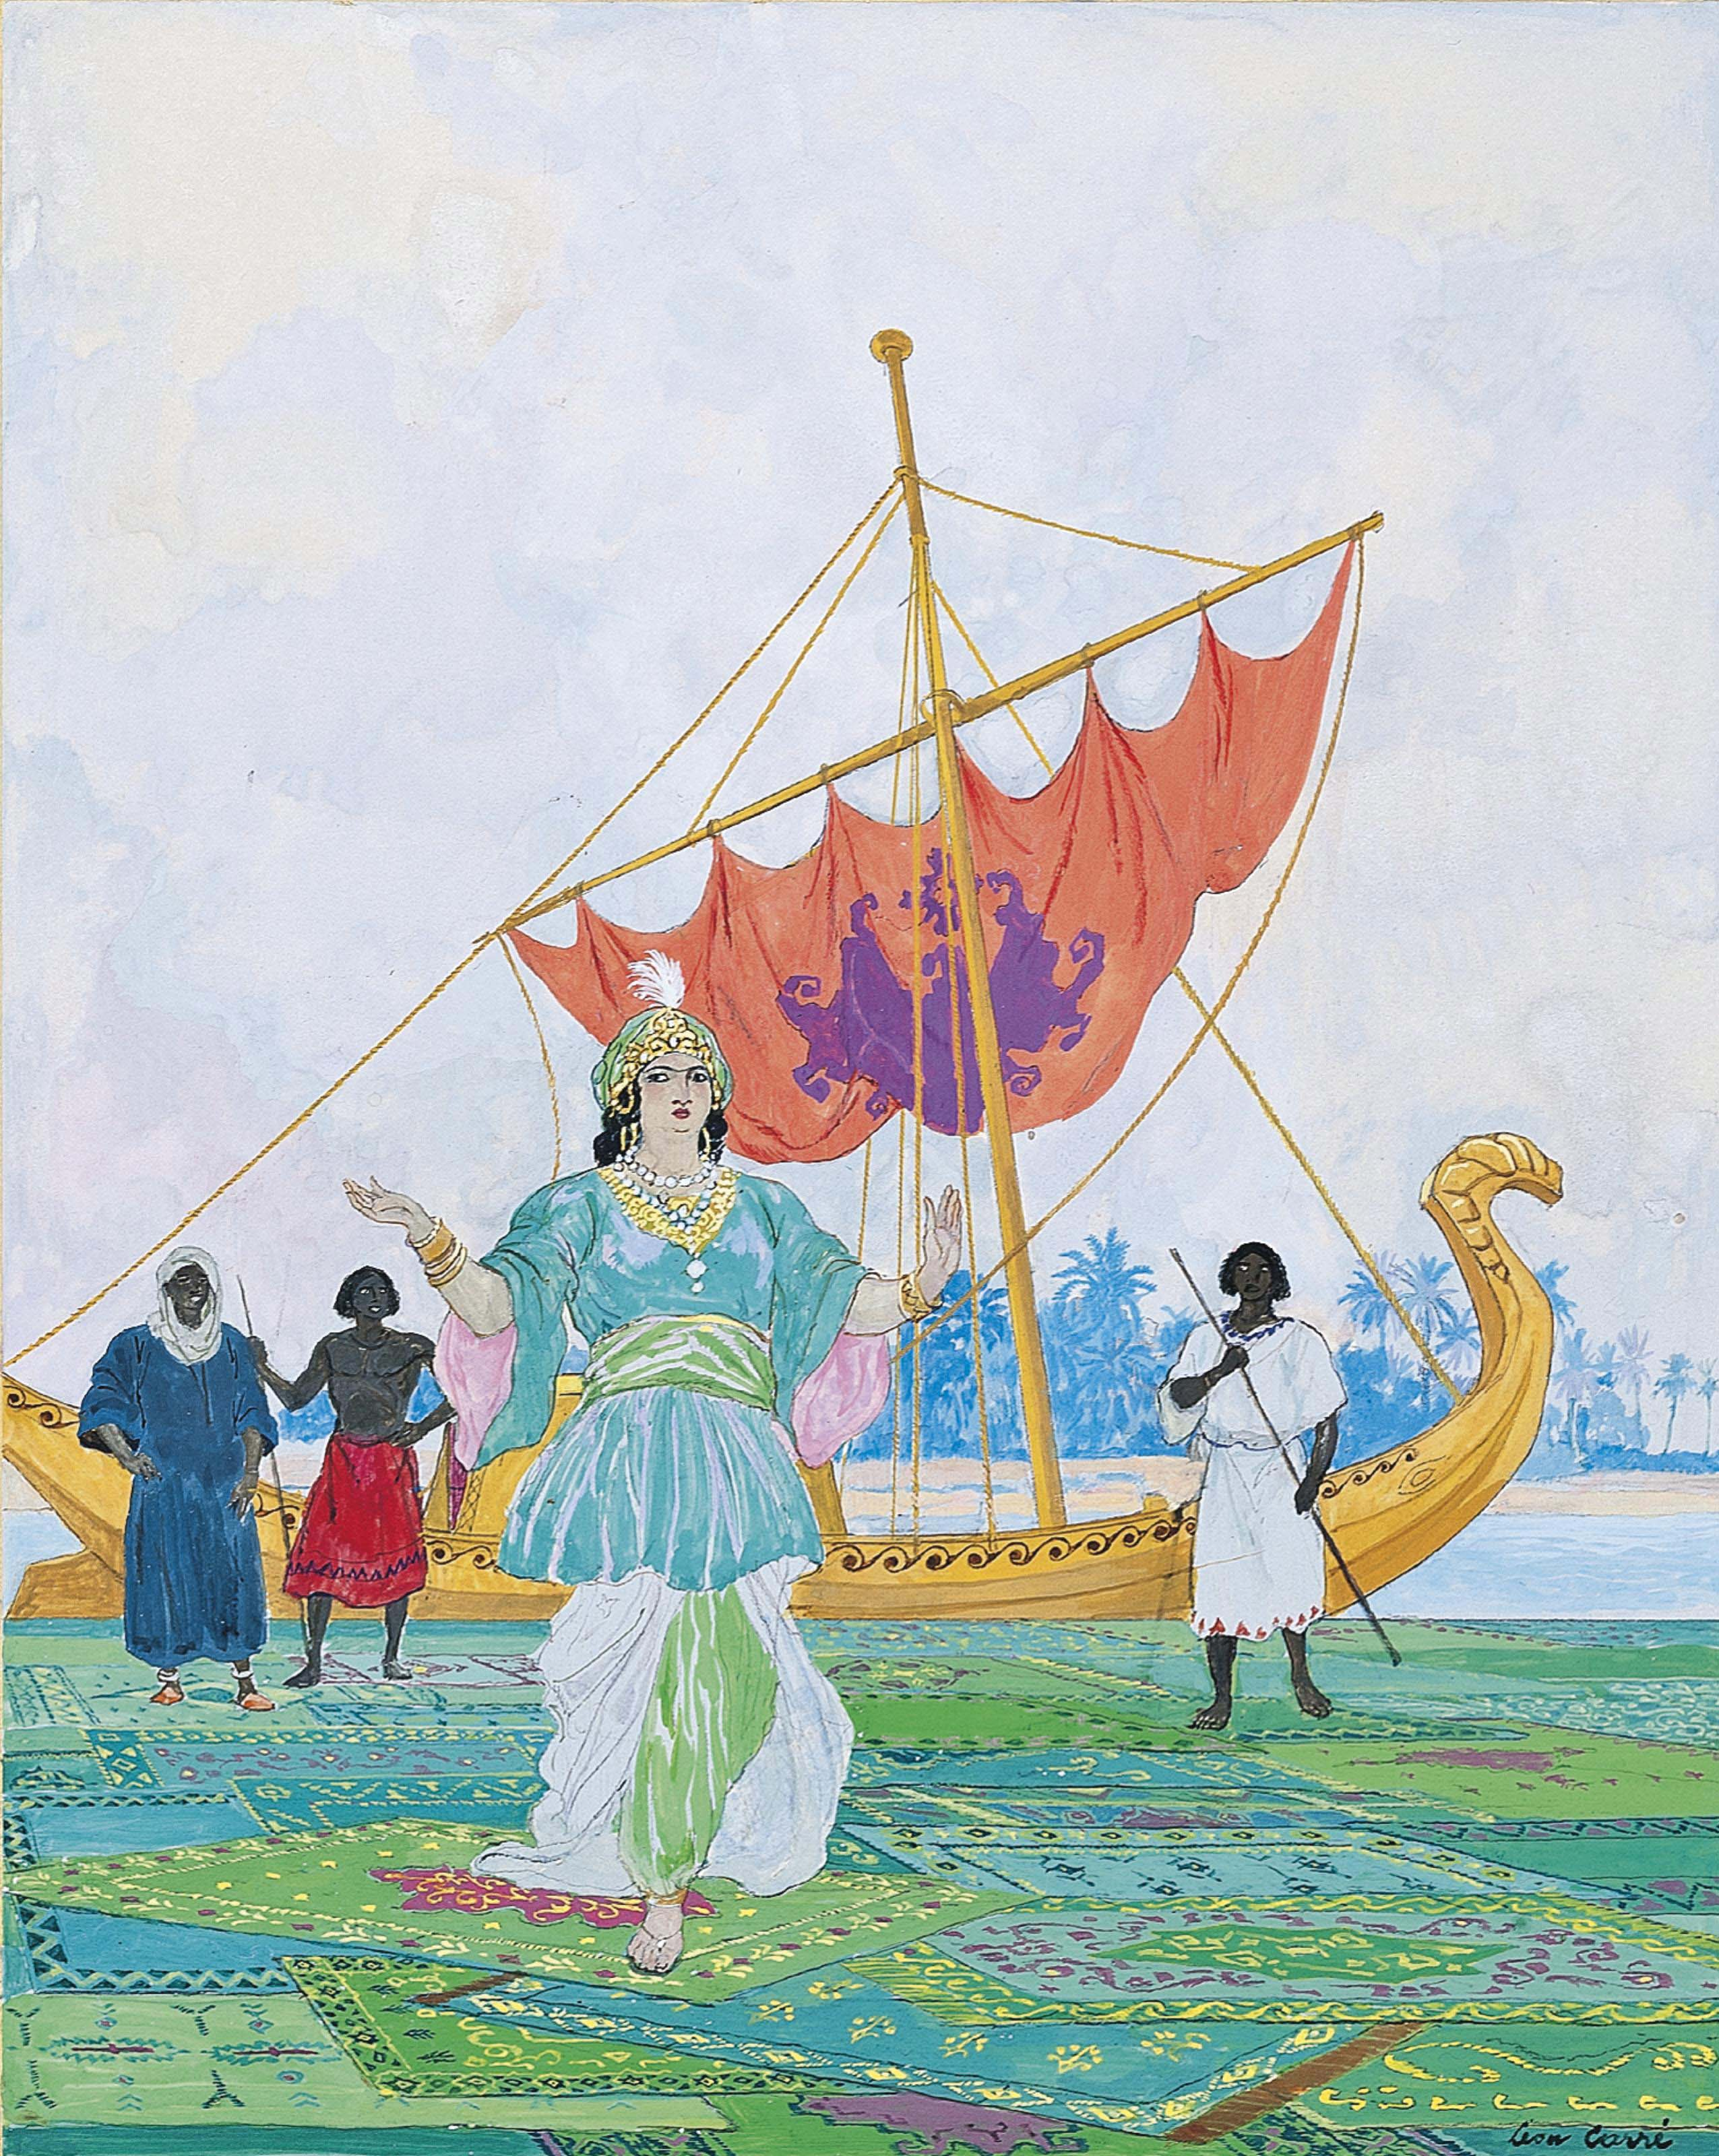 The princess walked away from the dahabieh, from 'The Story of Baïbars and the Police Captains'